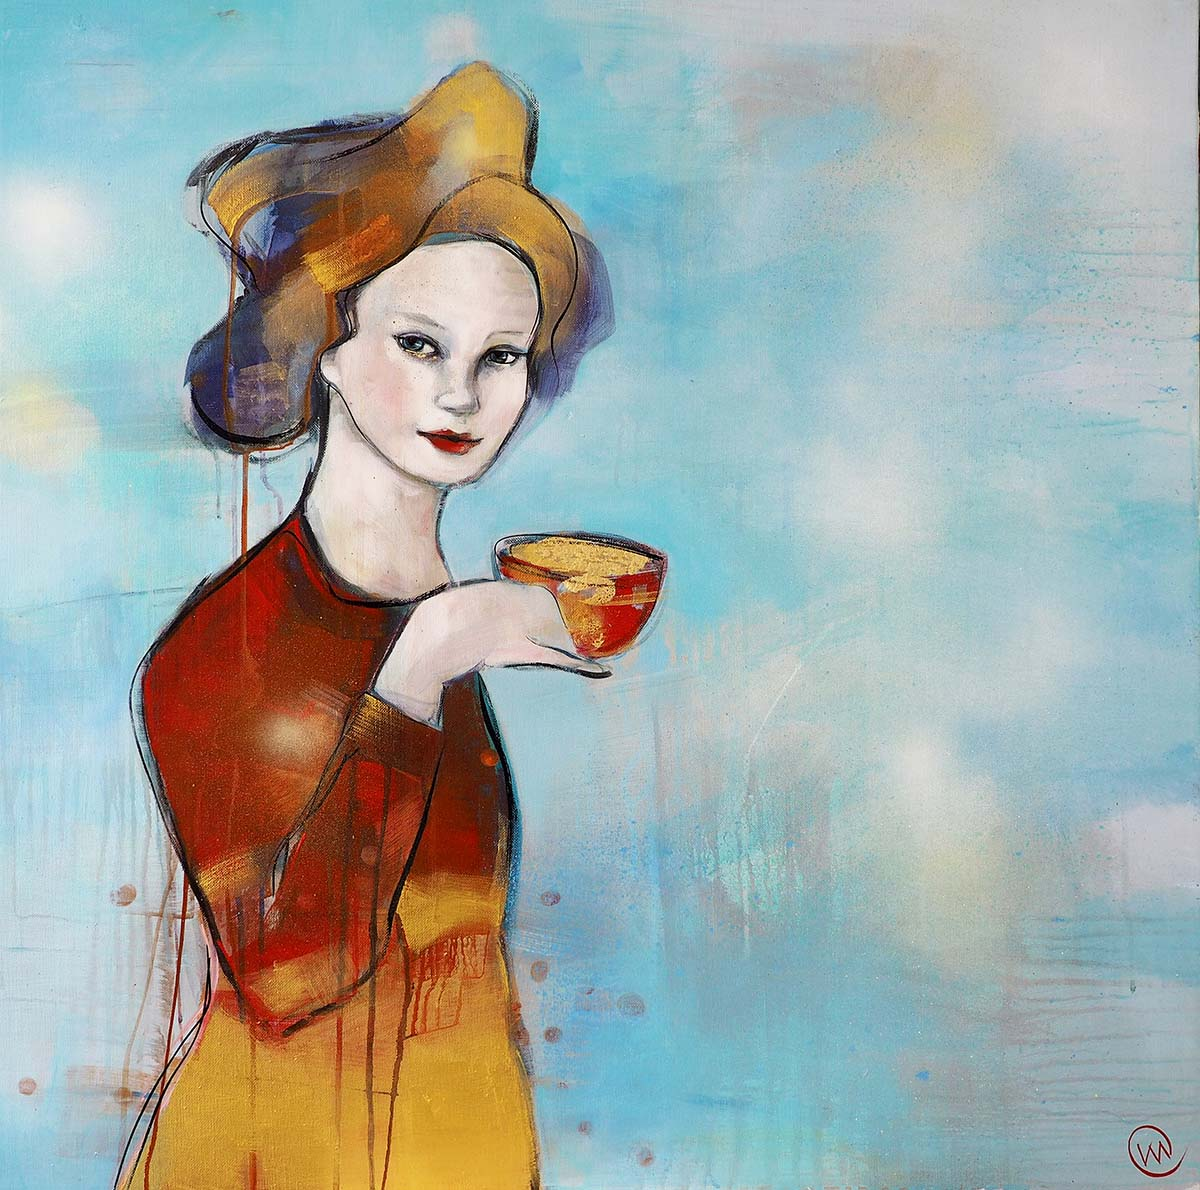 Verena Waddell visual artist print on canvas Holding Gold